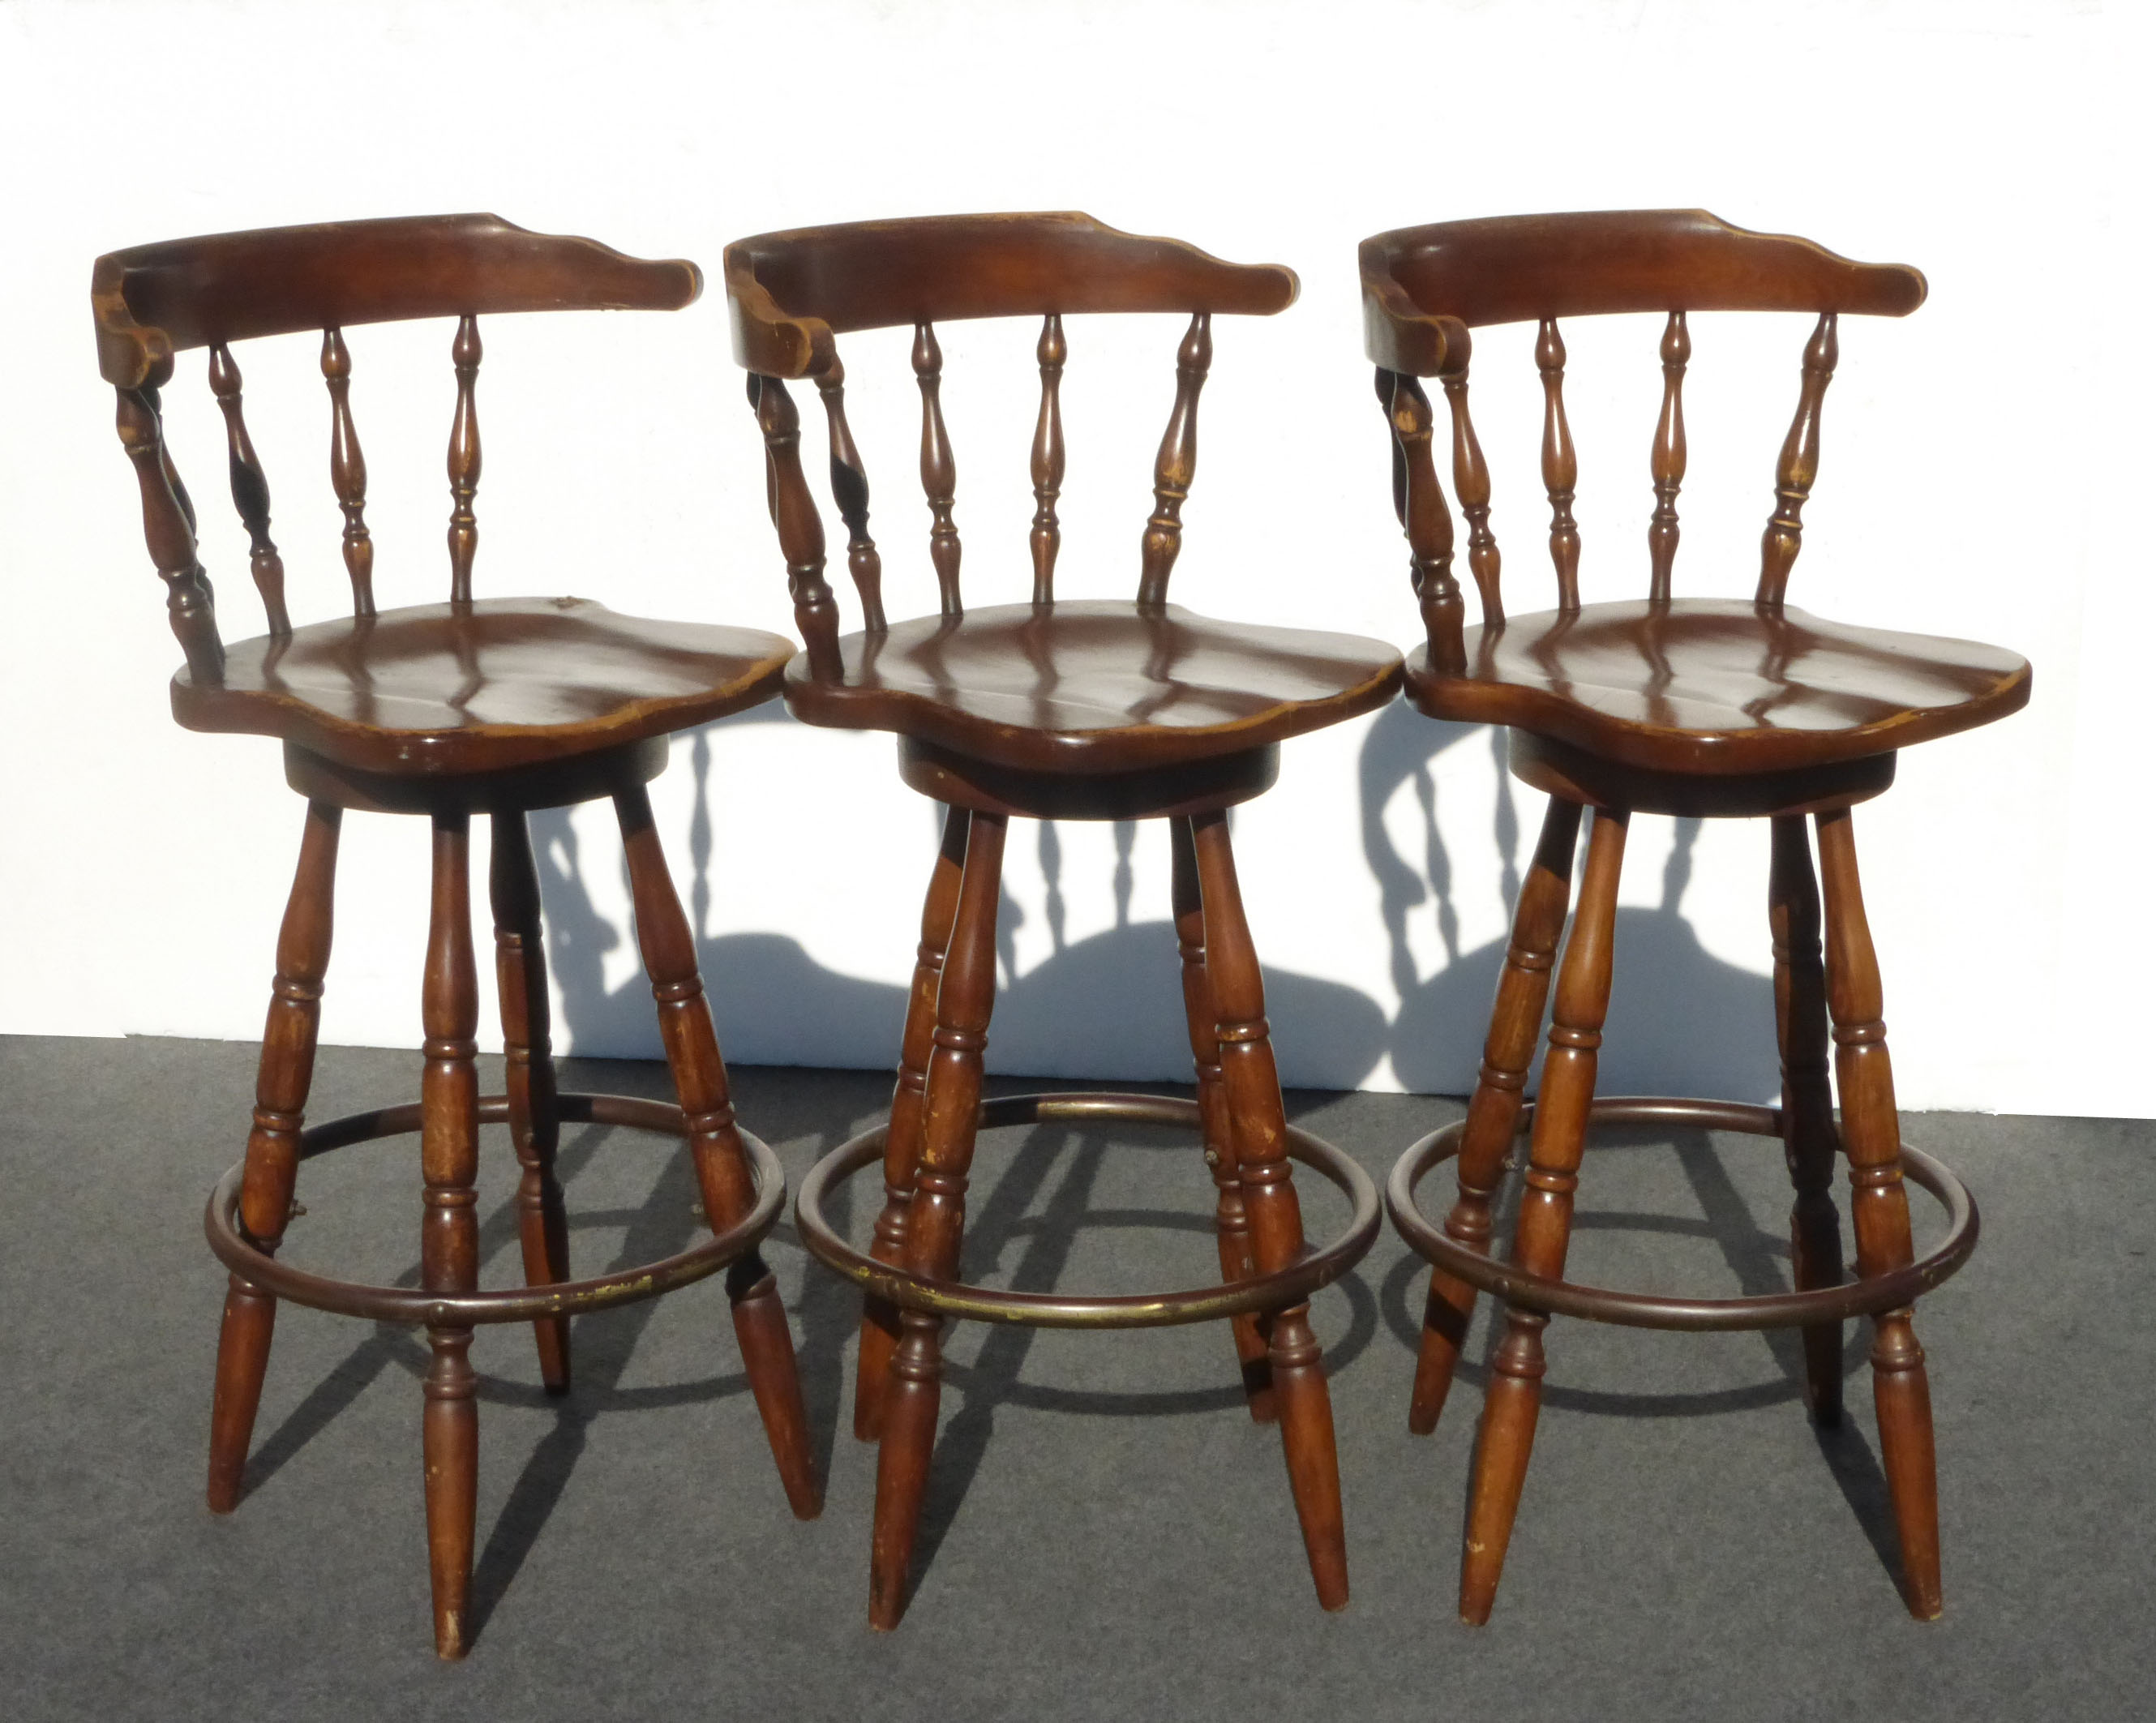 French Country Wood Swivel Bar Stools Set Of 3 Chairish